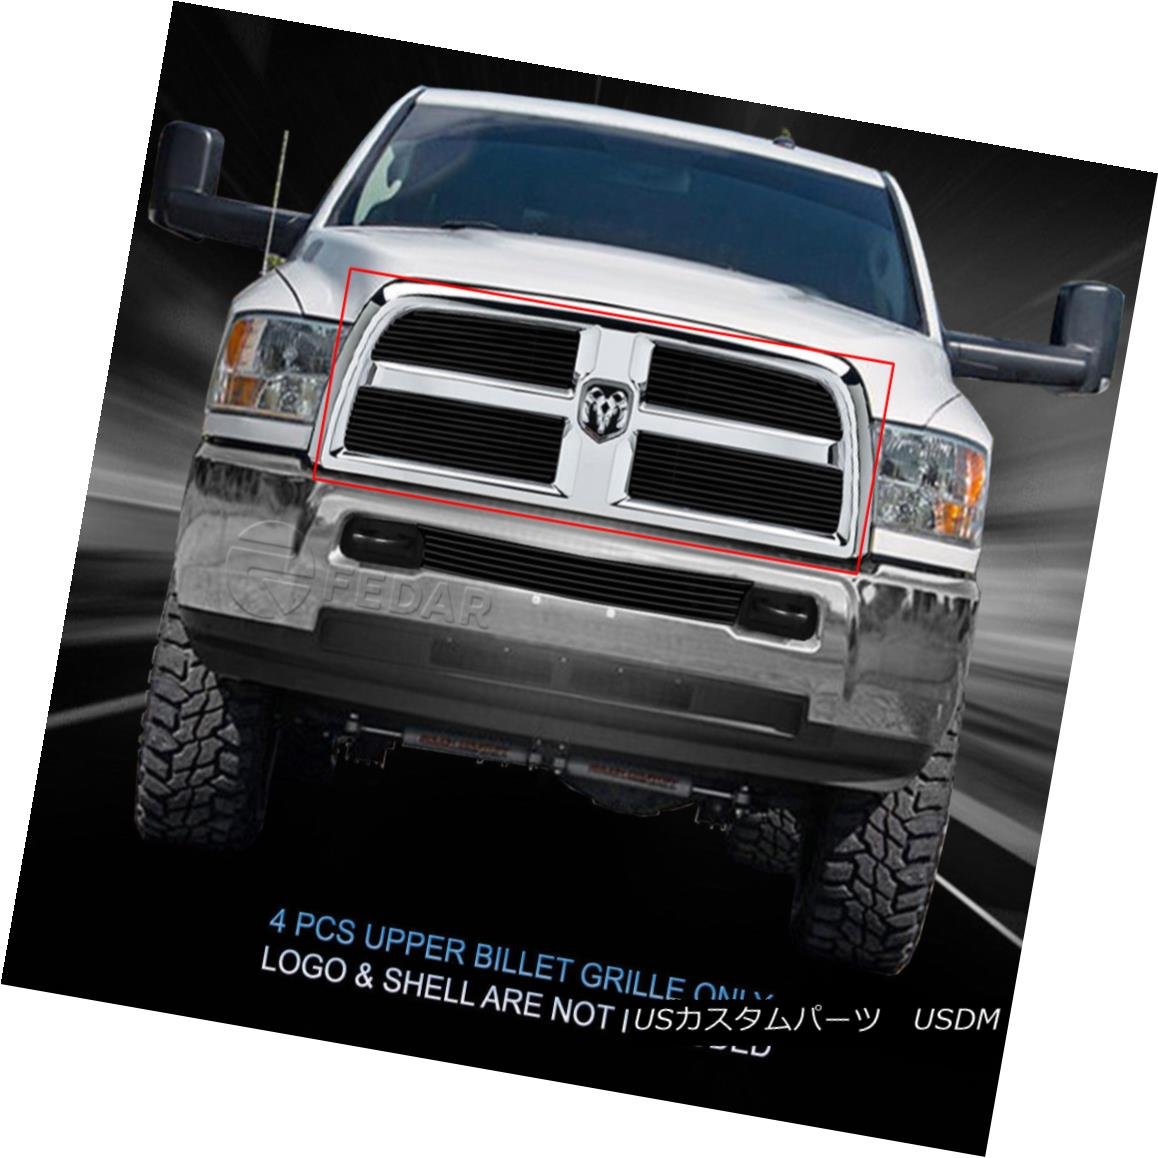 グリル Fedar Fits 2013-2017 Dodge Ram 2500/3500 Black Main Upper Billet Grille Insert Fedar Fit 2013-2017 Dodge Ram 2500/3500 Black上部アッパービレットグリルインサート